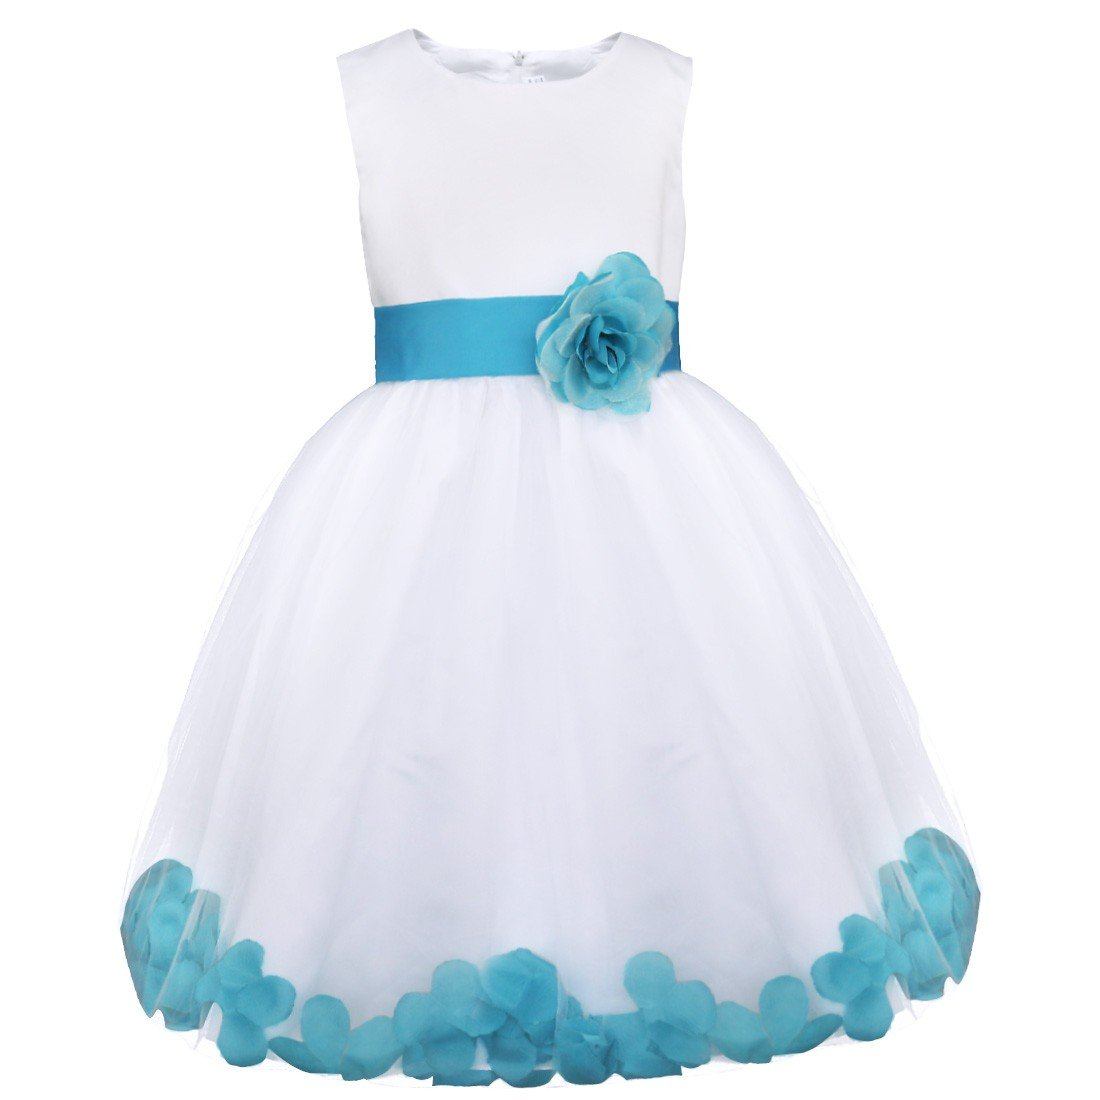 Amazon.com: iixpin Kids Girls Petals Tulle Sleeveless Wedding Pageant Party Dresses Princess Flower Girl Dress: Clothing